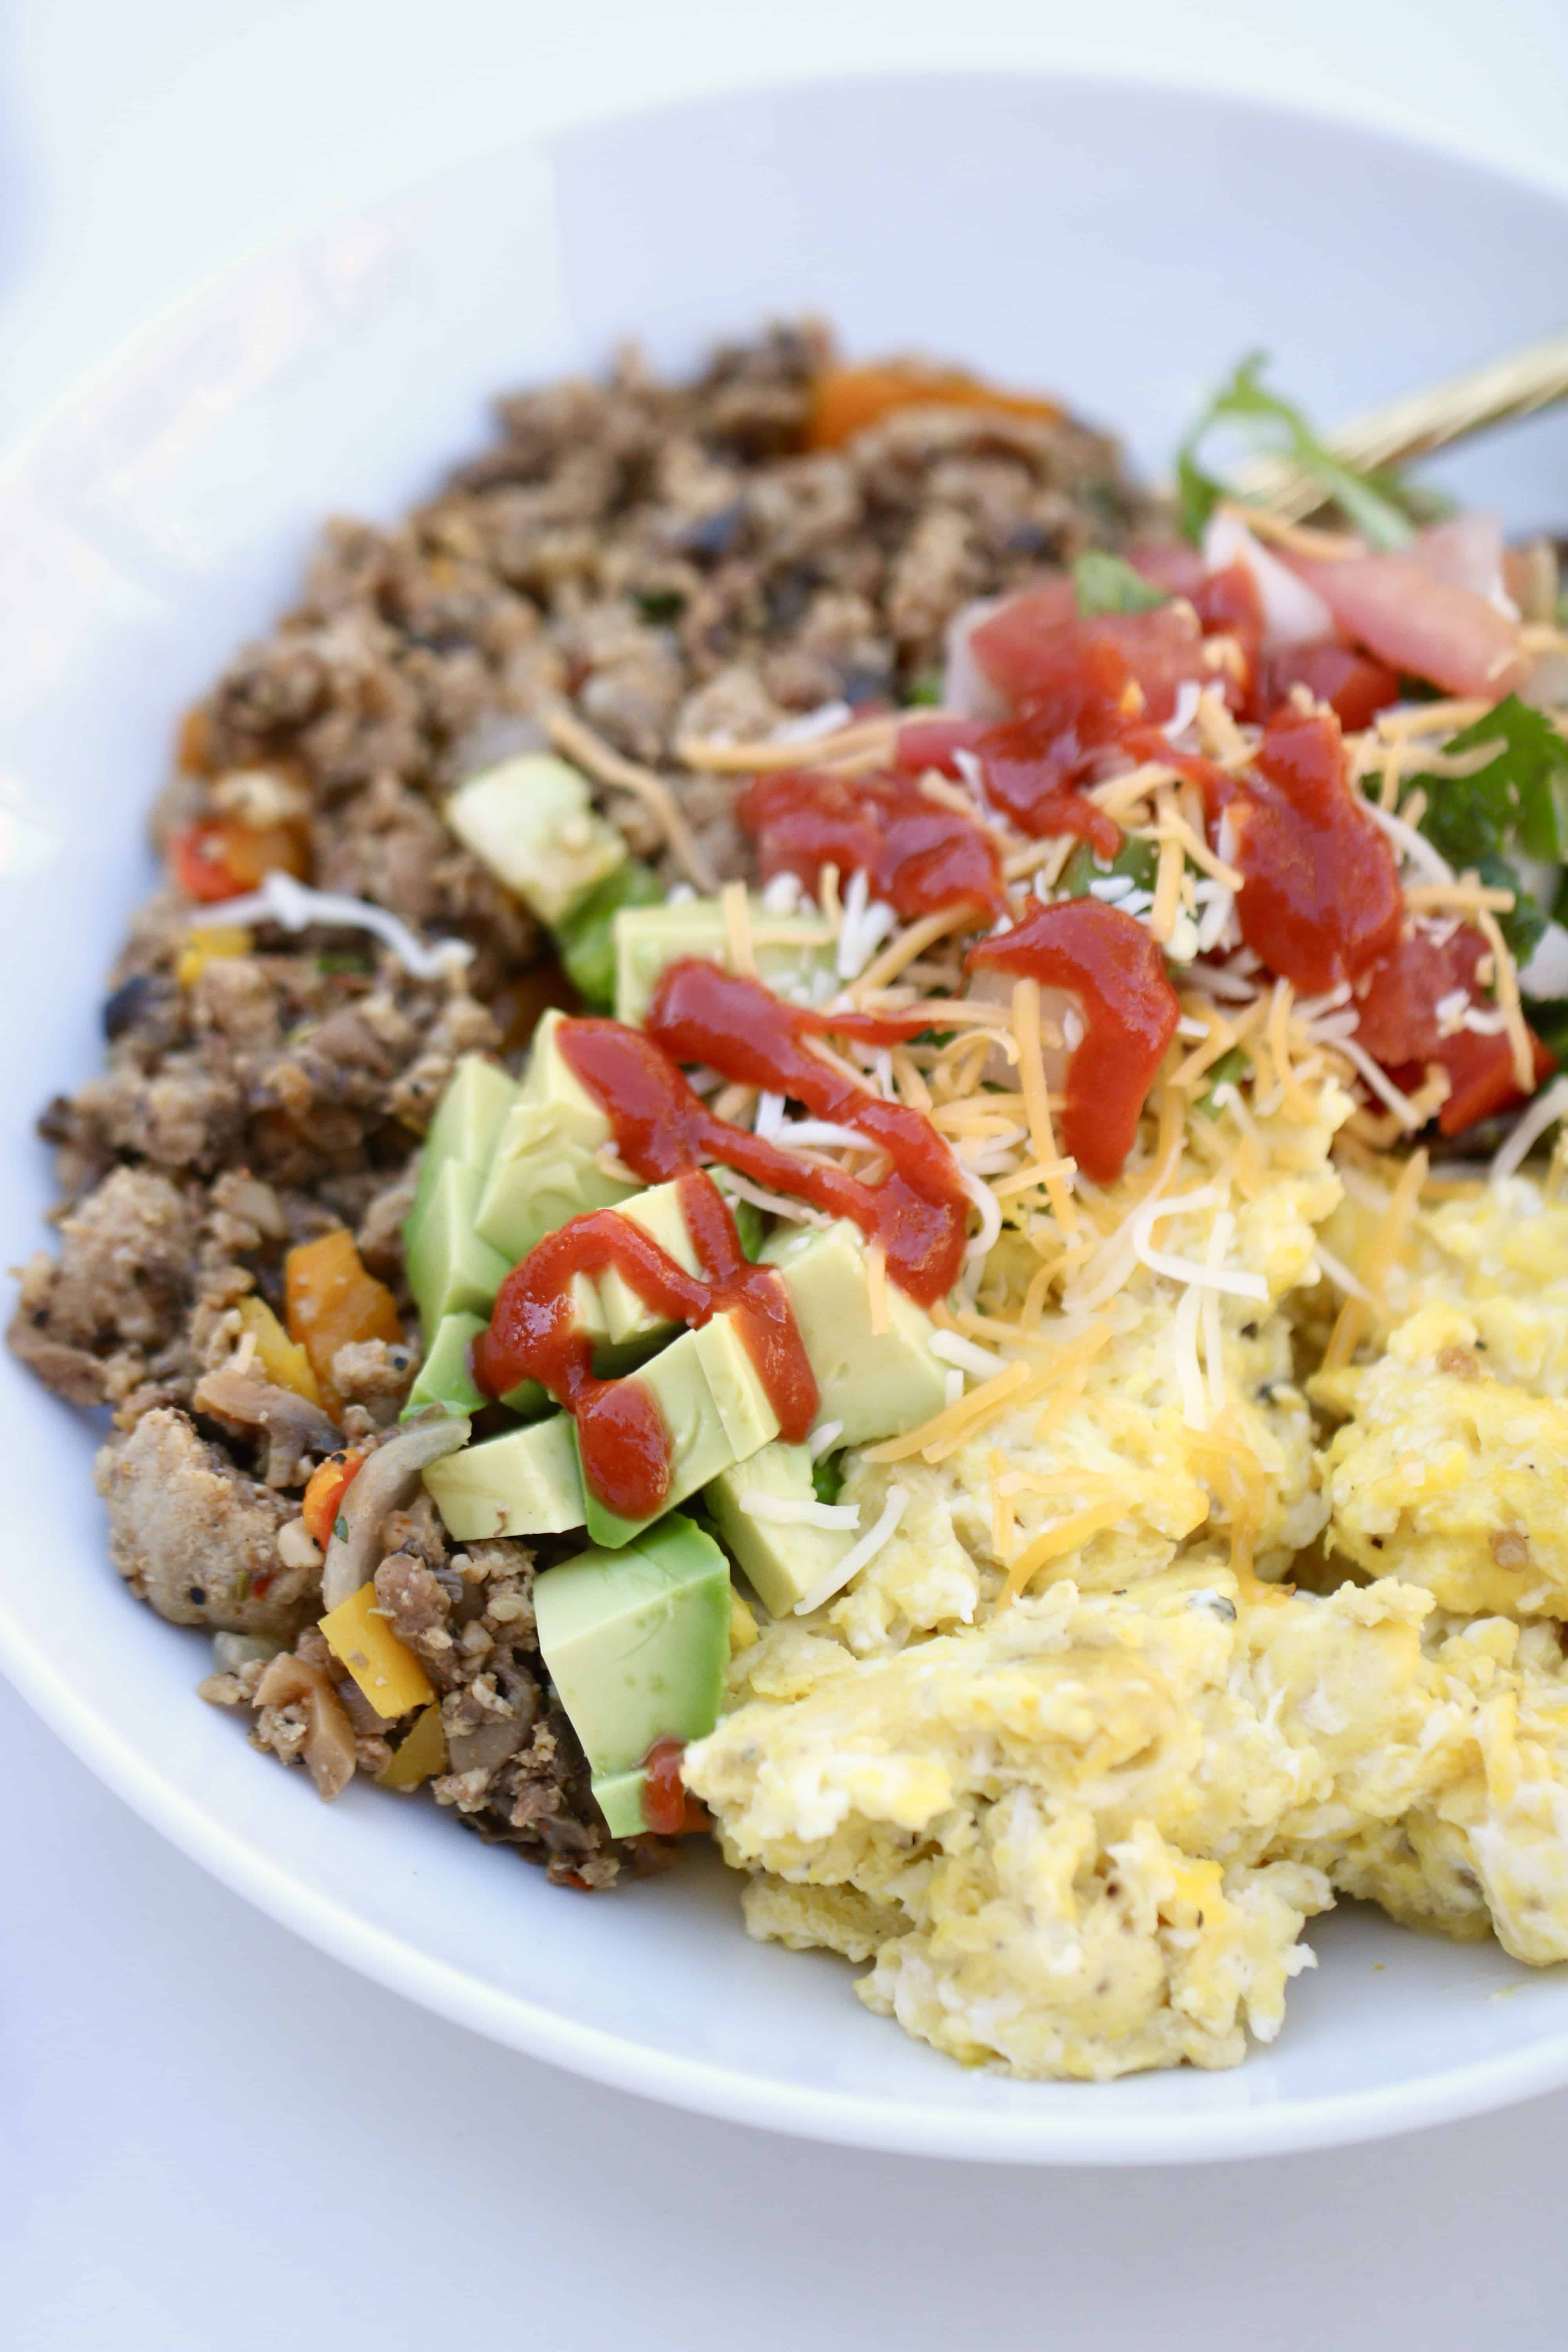 California Breakfast Burritos - Embracing the Blend! @SHAWSIMPLESWAPS